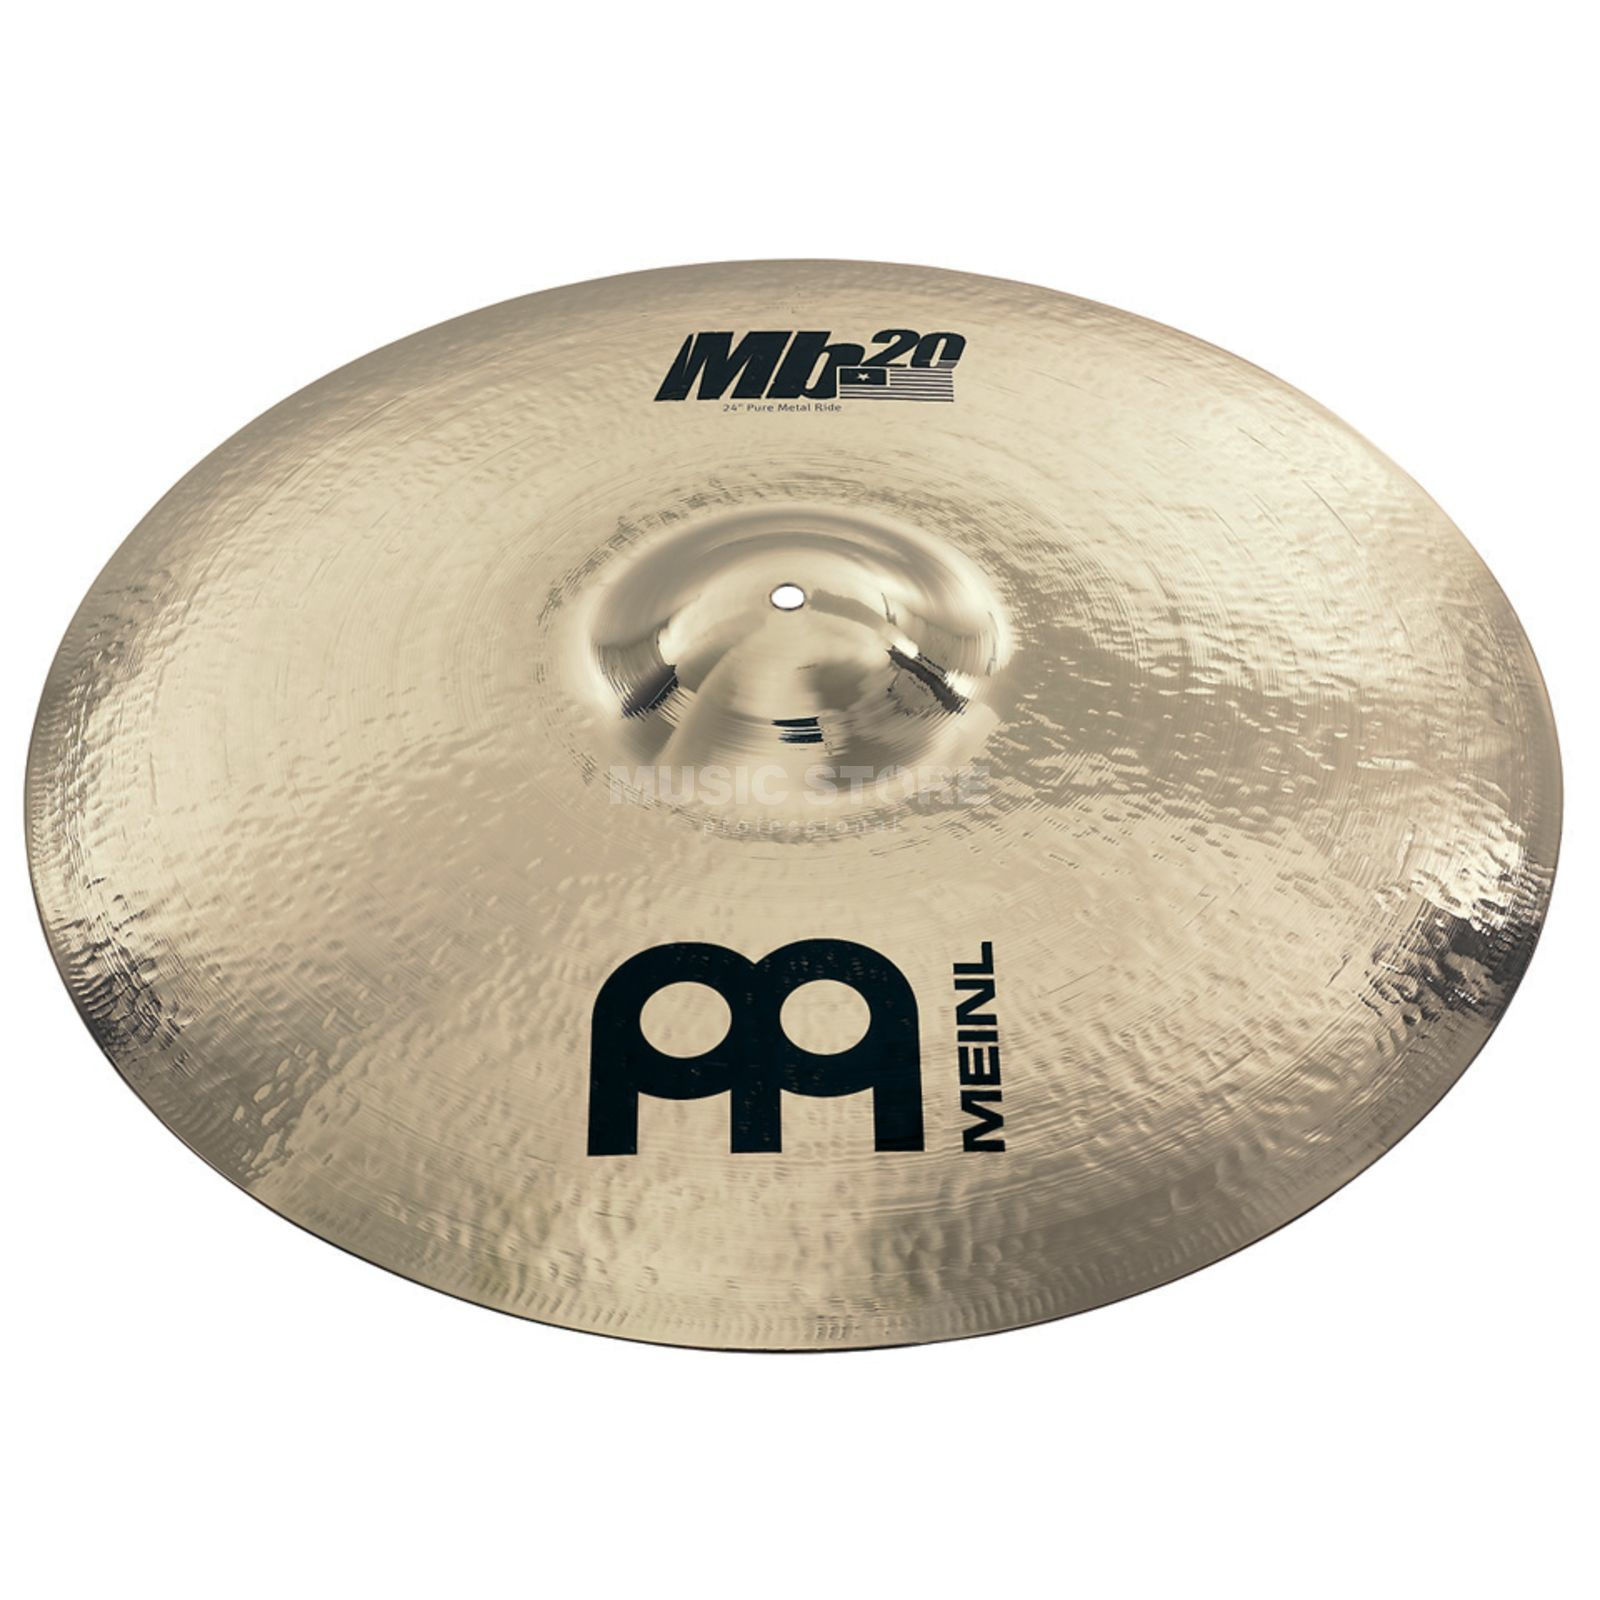 "Meinl MB20 Pure Metal Ride 24"" + Bag MB20-24PMR-B, Brilliant Finish Produktbillede"